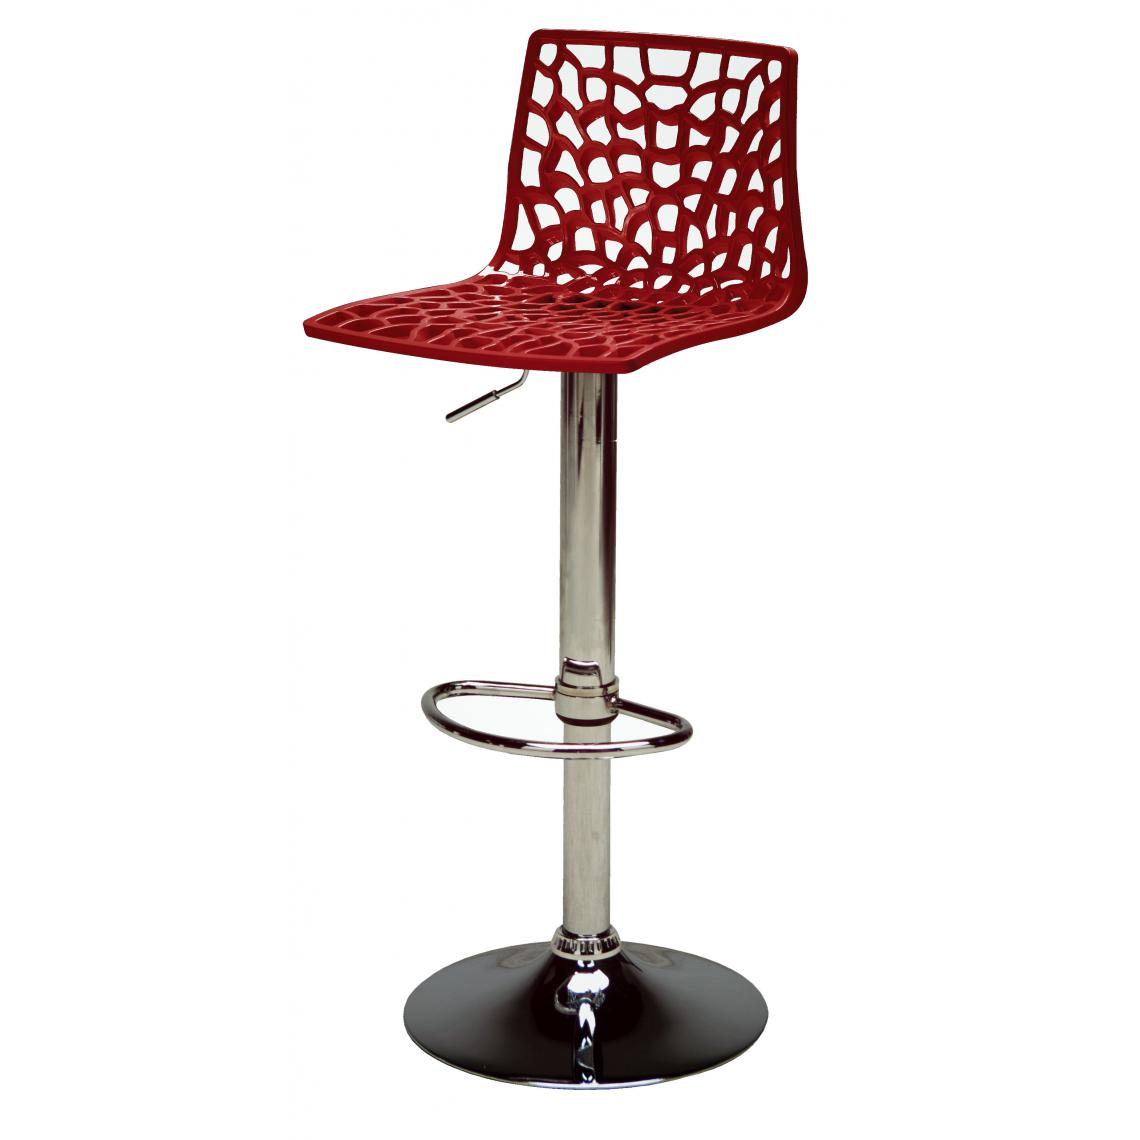 Tabouret De Bar Design Bordeaux Sparte 3 Suisses